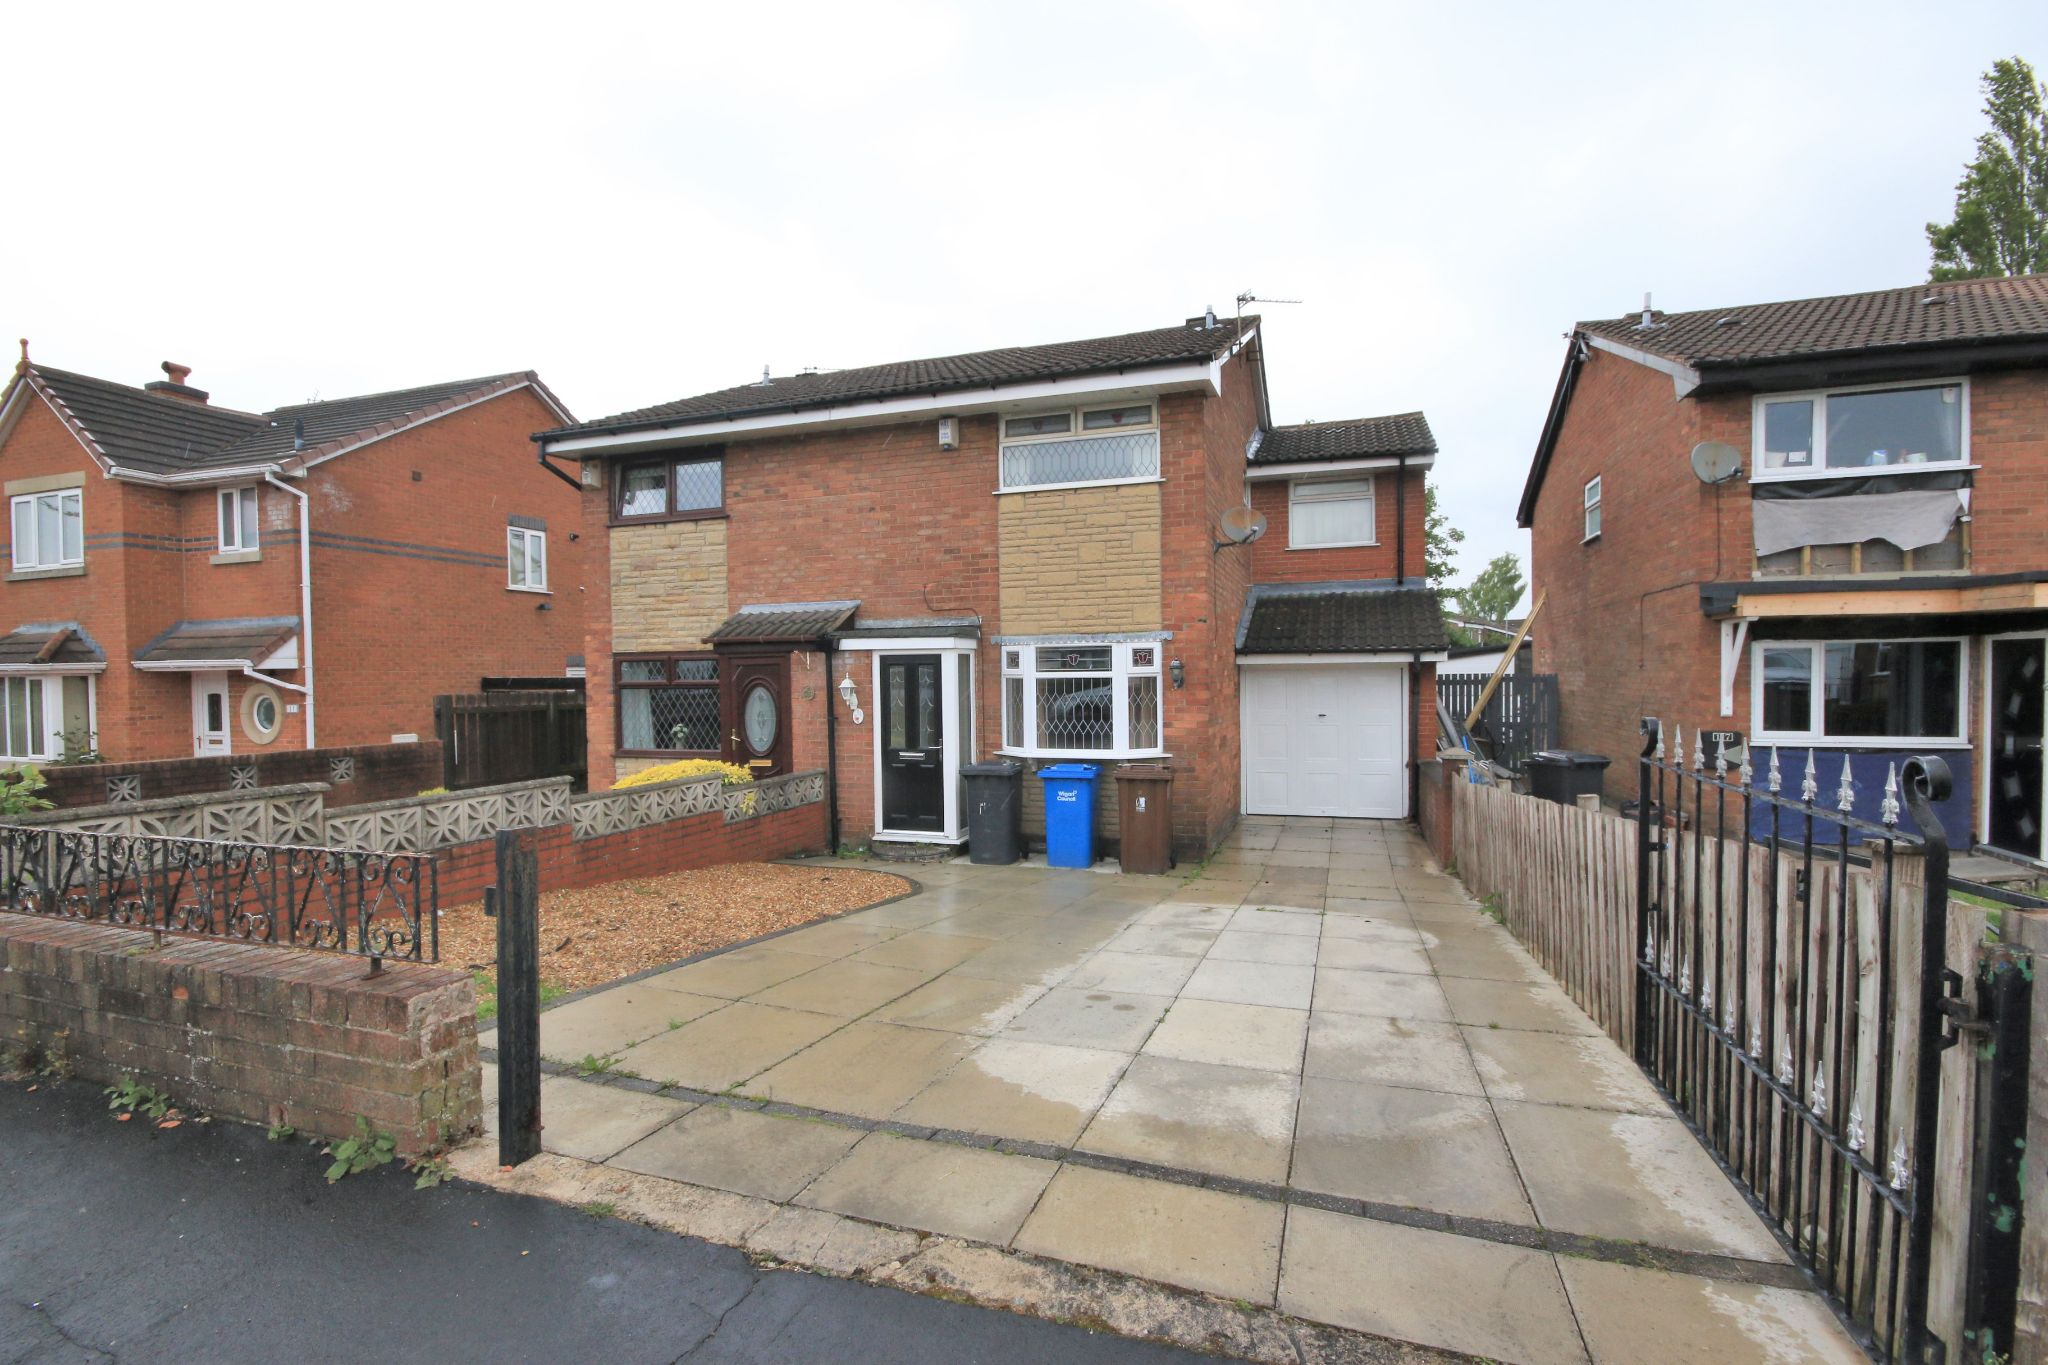 3 bedroom semi-detached house SSTC in Wigan - Photograph 1.